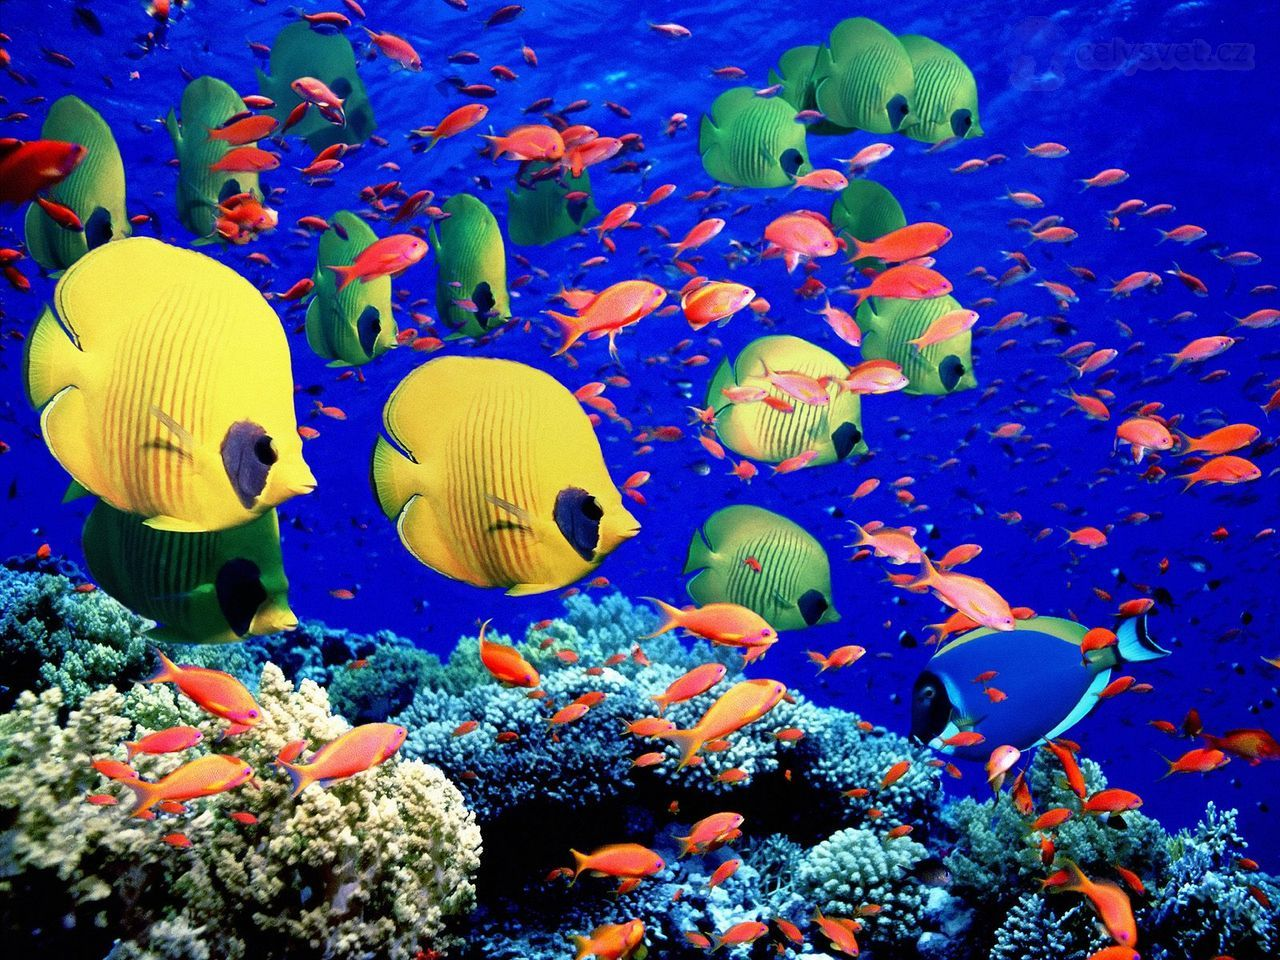 The Great Barrier Reef Australia As The Largest Living Structure On The Planet The Great Barrier R Great Barrier Reef Barrier Reef Australia Colorful Places